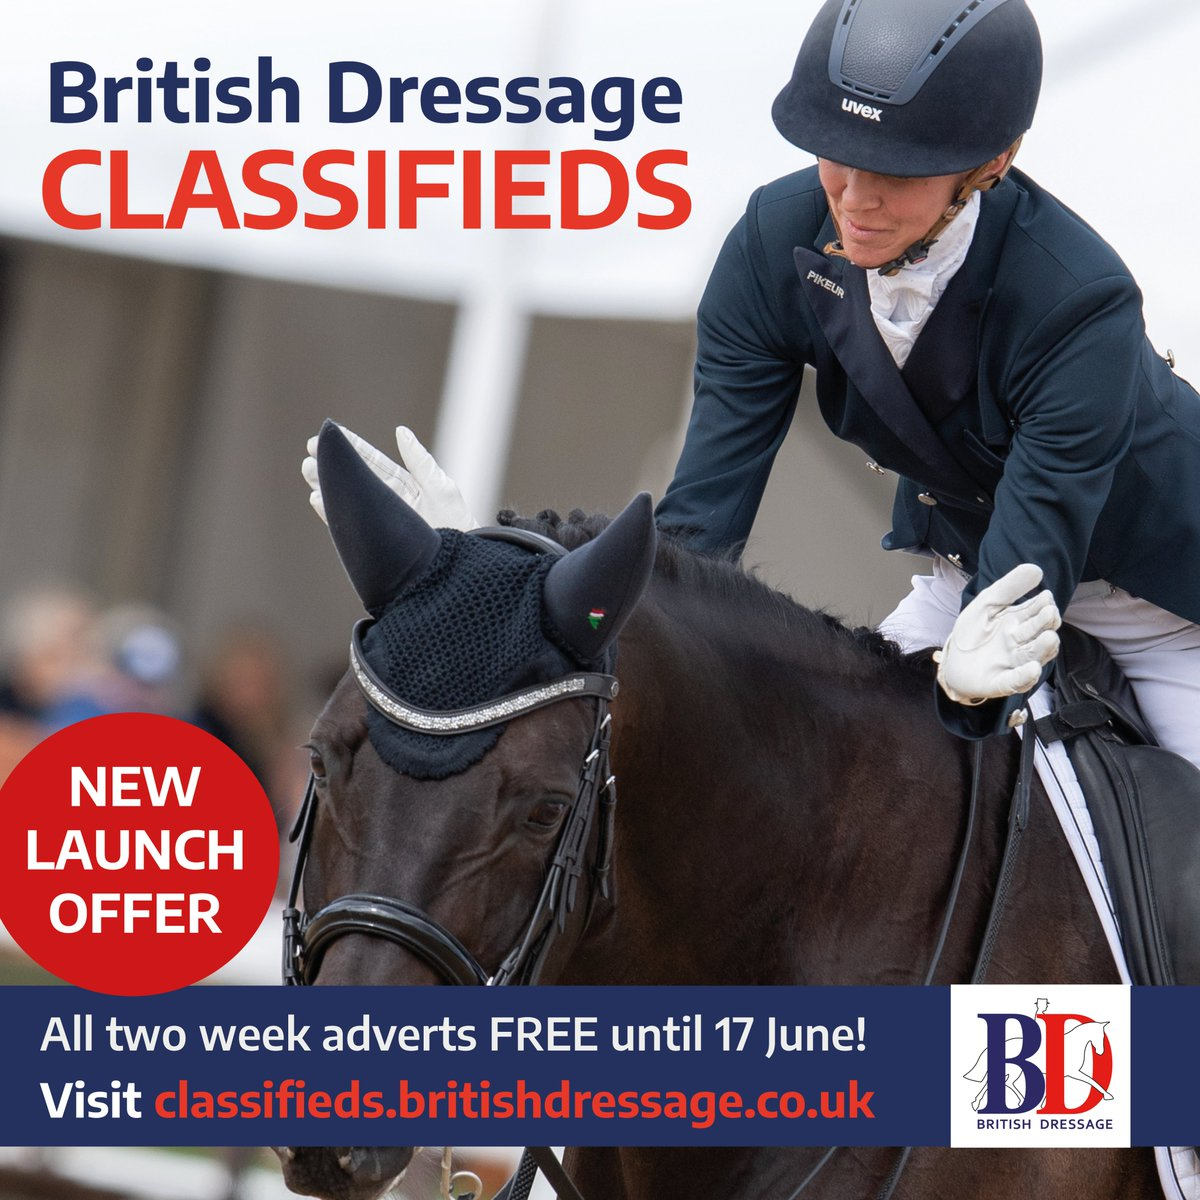 It's here! We're proud to present the all new BD Classifieds!  Buy, sell and browse all from dressage horses and stud services, to stable equipment, transport and tack 🐴  Read about our brand new service, introductory offer and visit BD Classifieds here https://t.co/OCSZHFHG7g https://t.co/KqYGhCNefj